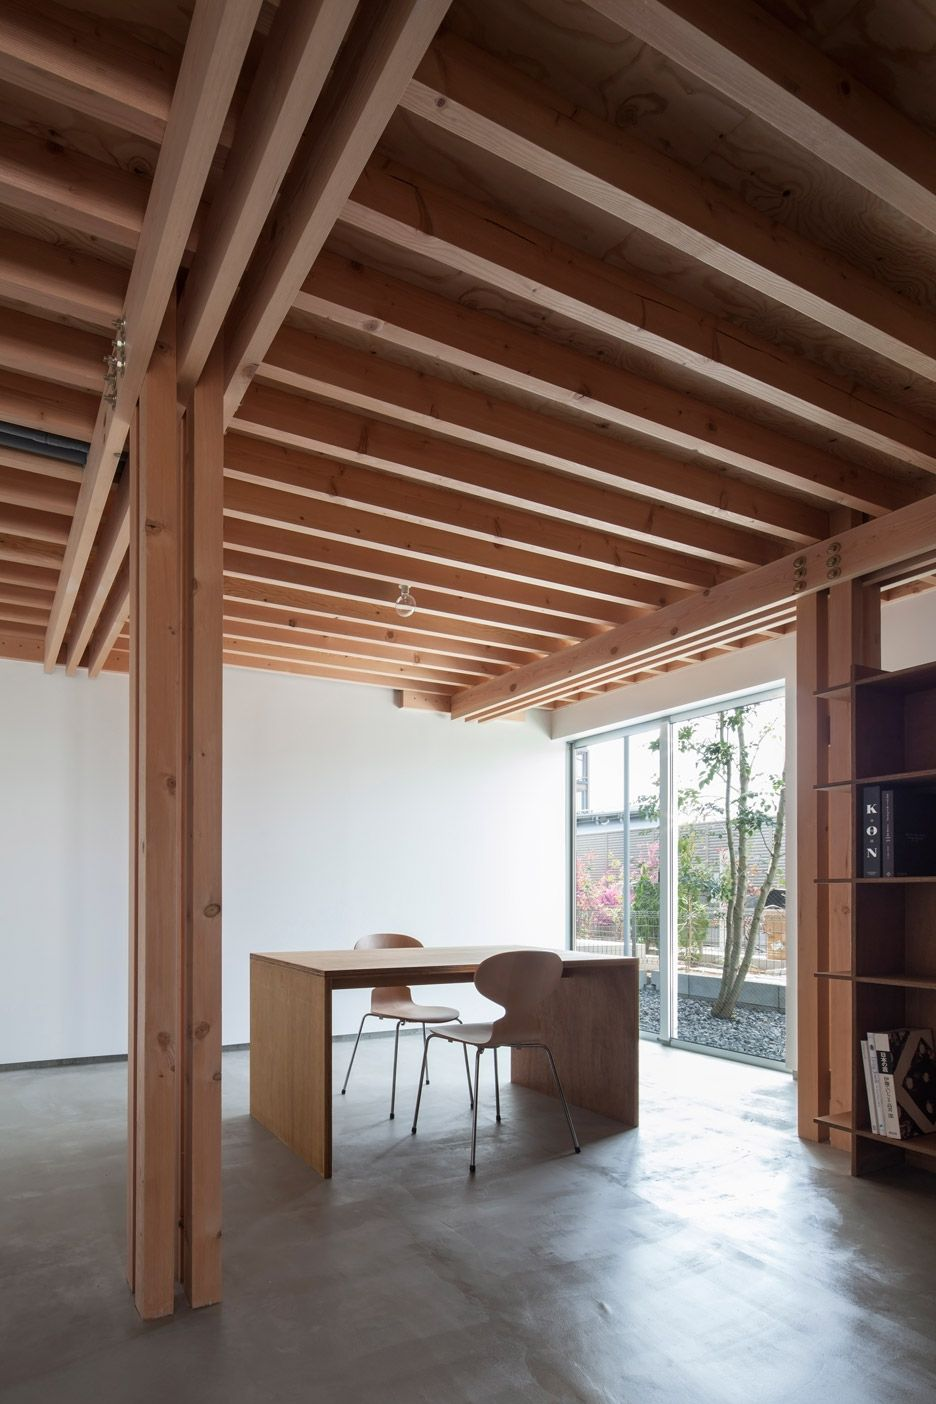 Exposed ceiling beams and joists composite timber column for Architectural wood columns